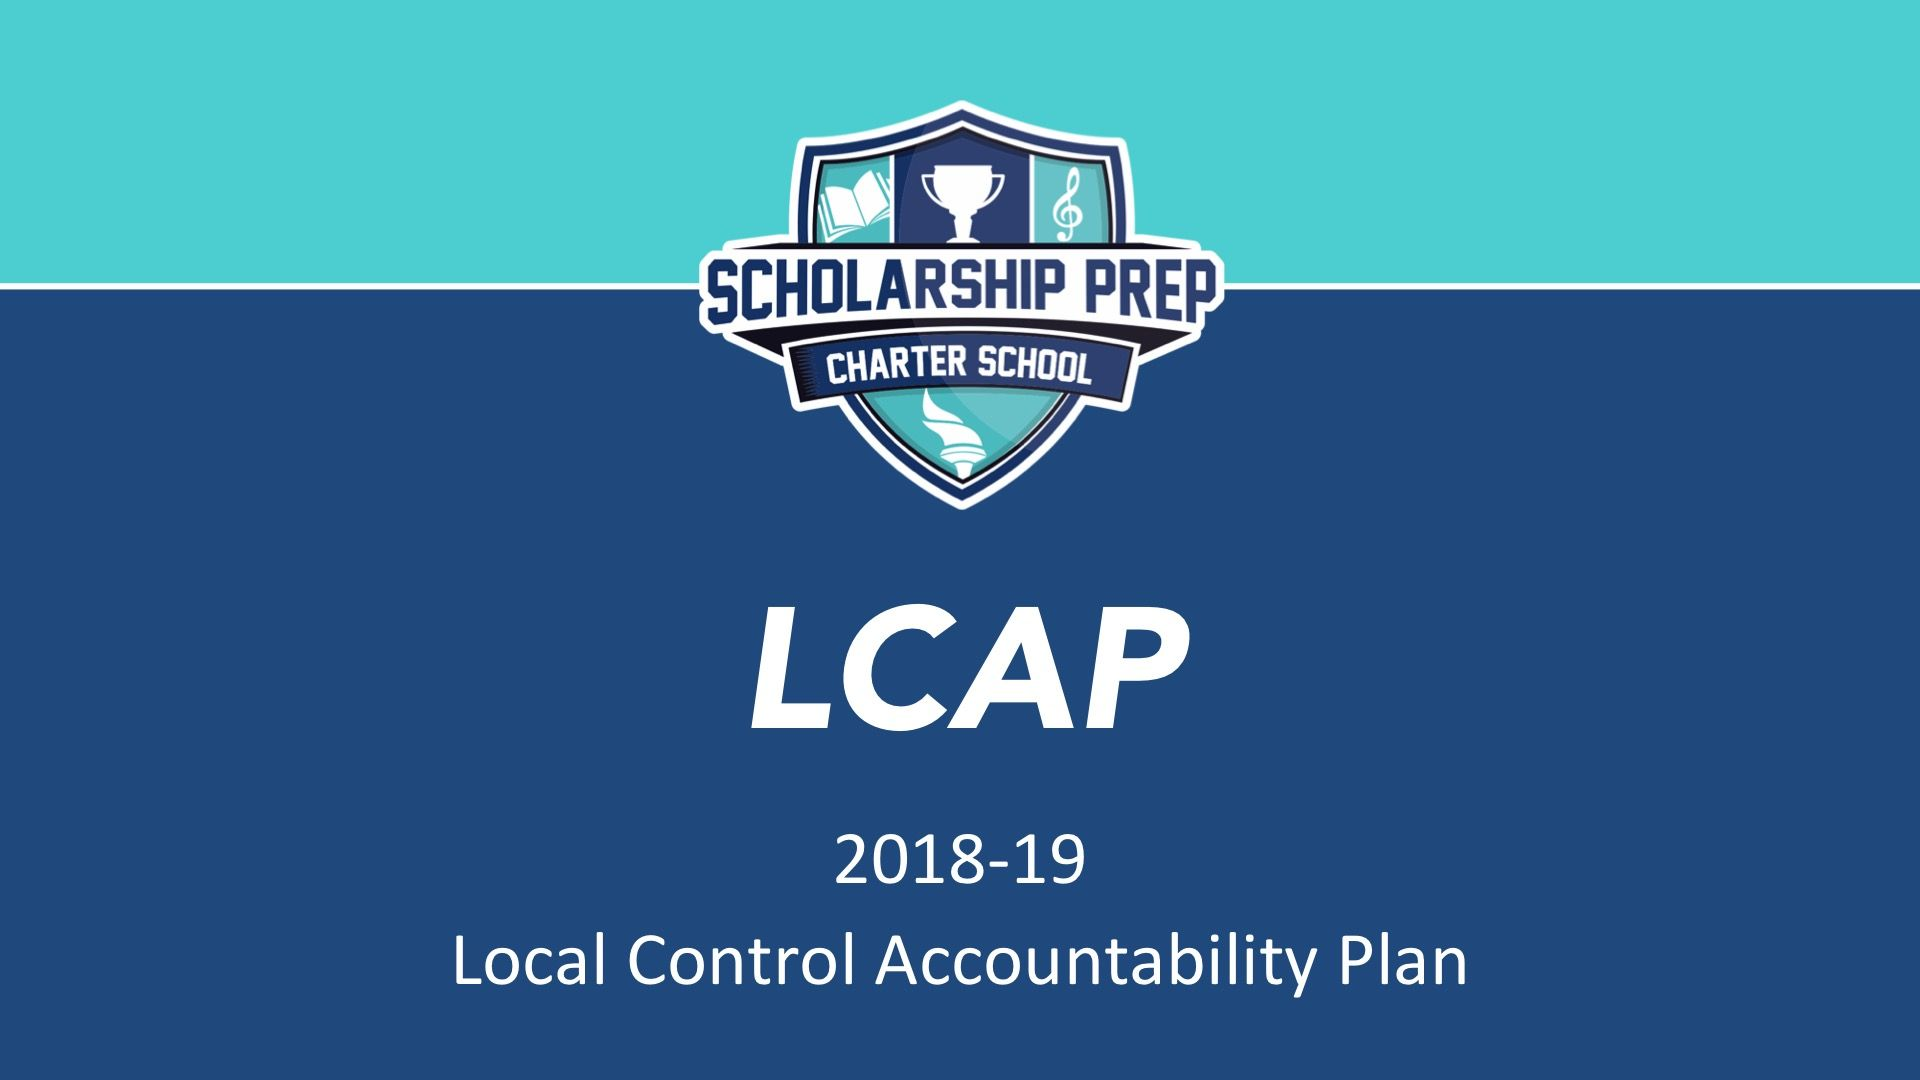 2018-19 Local Control Accountability Plan